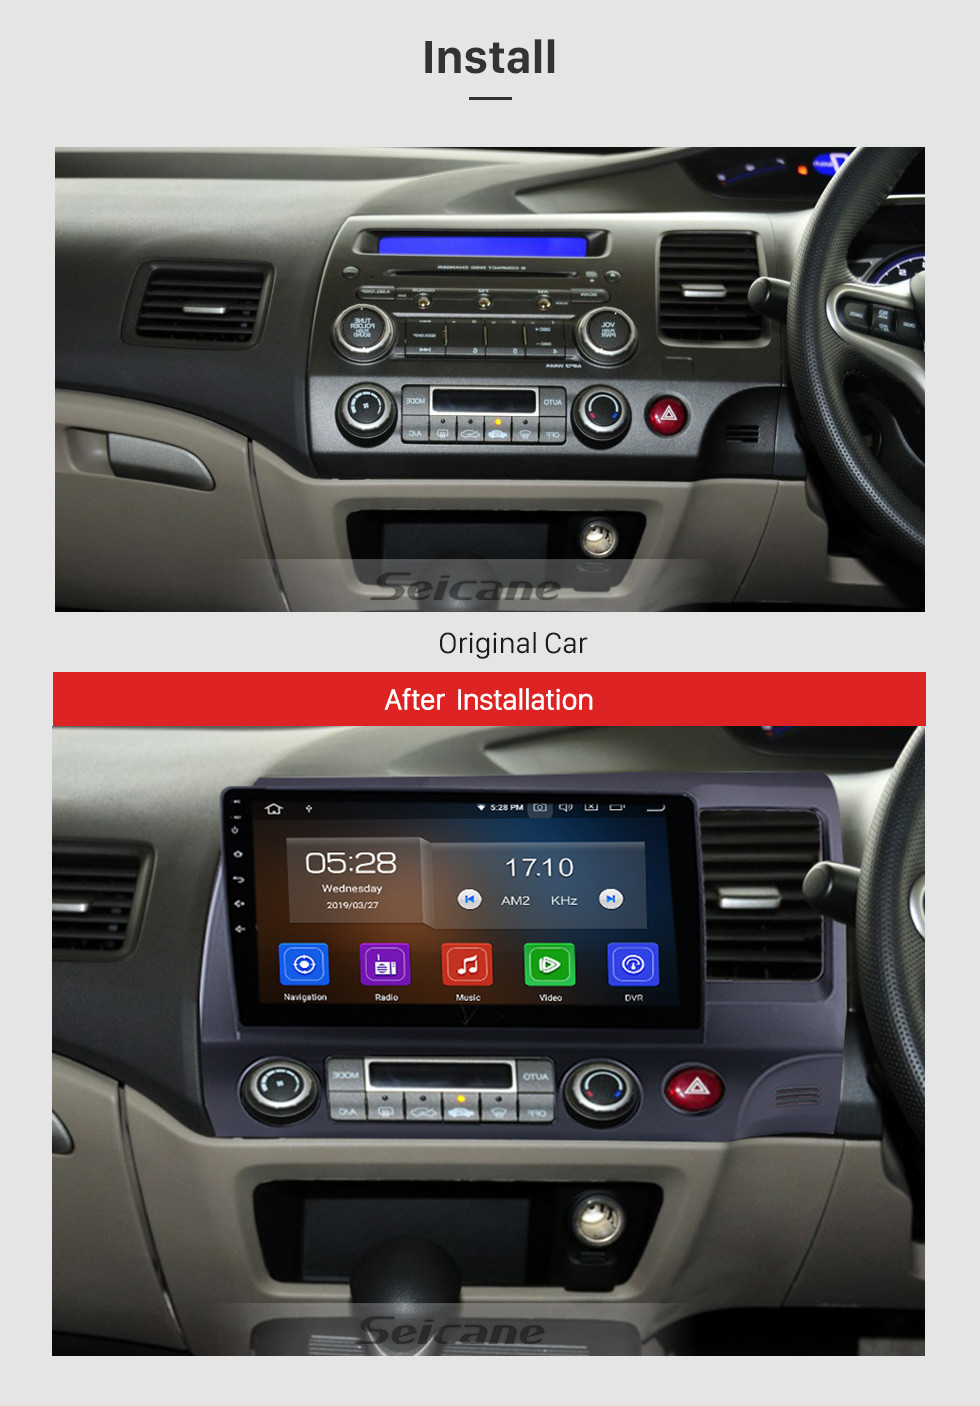 Seicane OEM Android 9.0 2006-2011 Honda CIVIC RHD Radio Upgrade with Autoradio Bluetooth GPS System 1024*600 Multi-touch Capacitive Screen CD DVD Player 3G WiFi Mirror Link OBD2 Auto AV in/out USB SD MP3 MP4 AUX DVR Reverse Camera